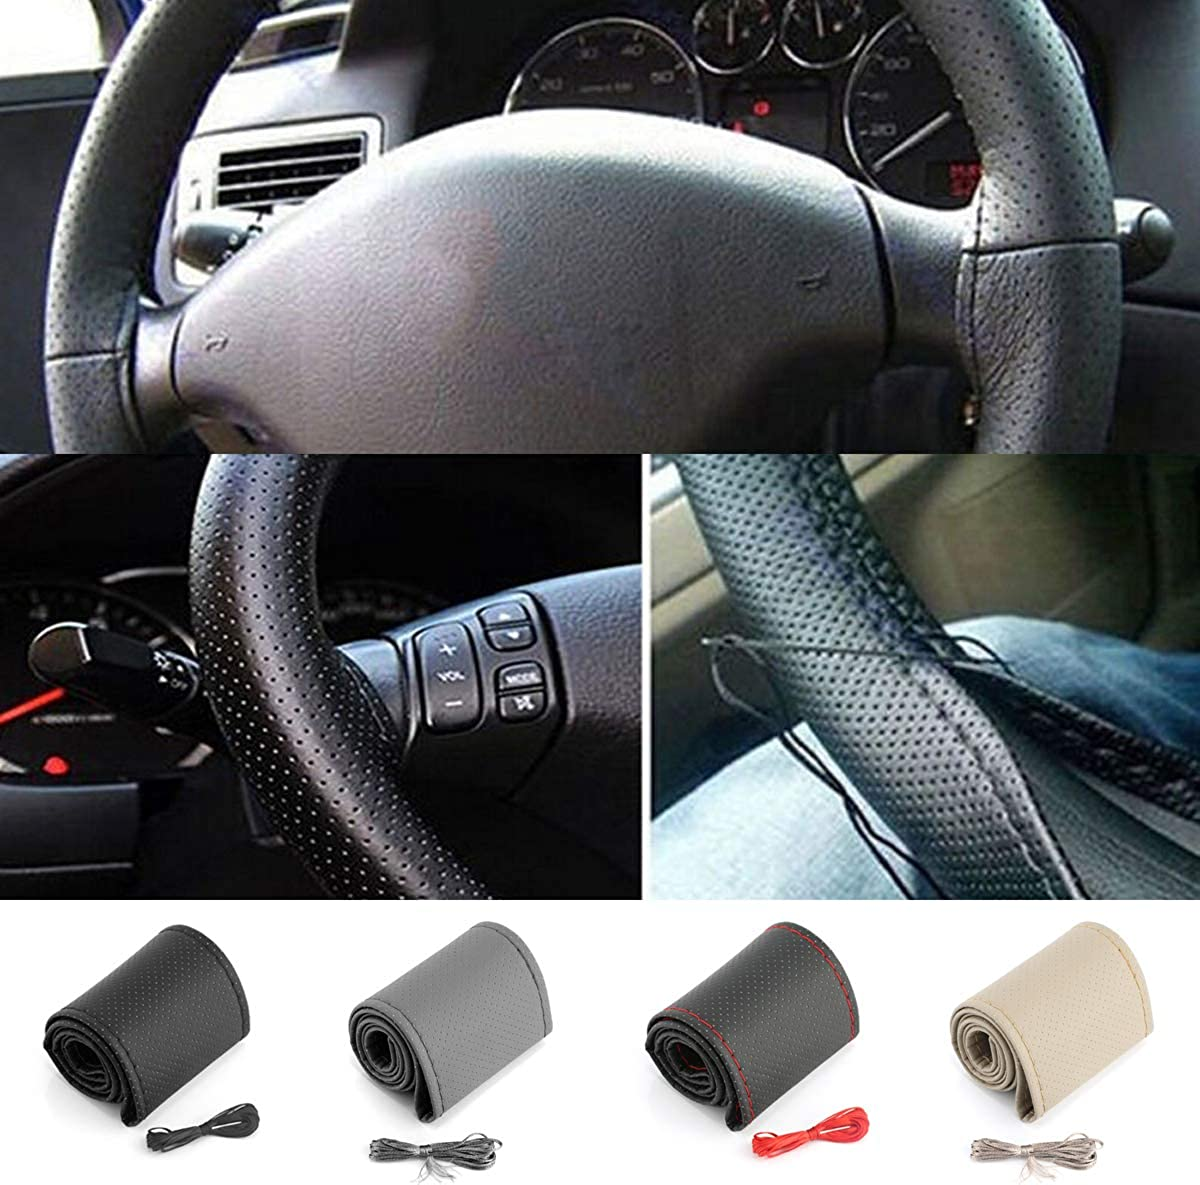 Ruiqas PU Leather Car Steering Wheel Cover DIY Steering Wheel Cover Anti-Slip Stitch On Wrap with Needle /& Thread